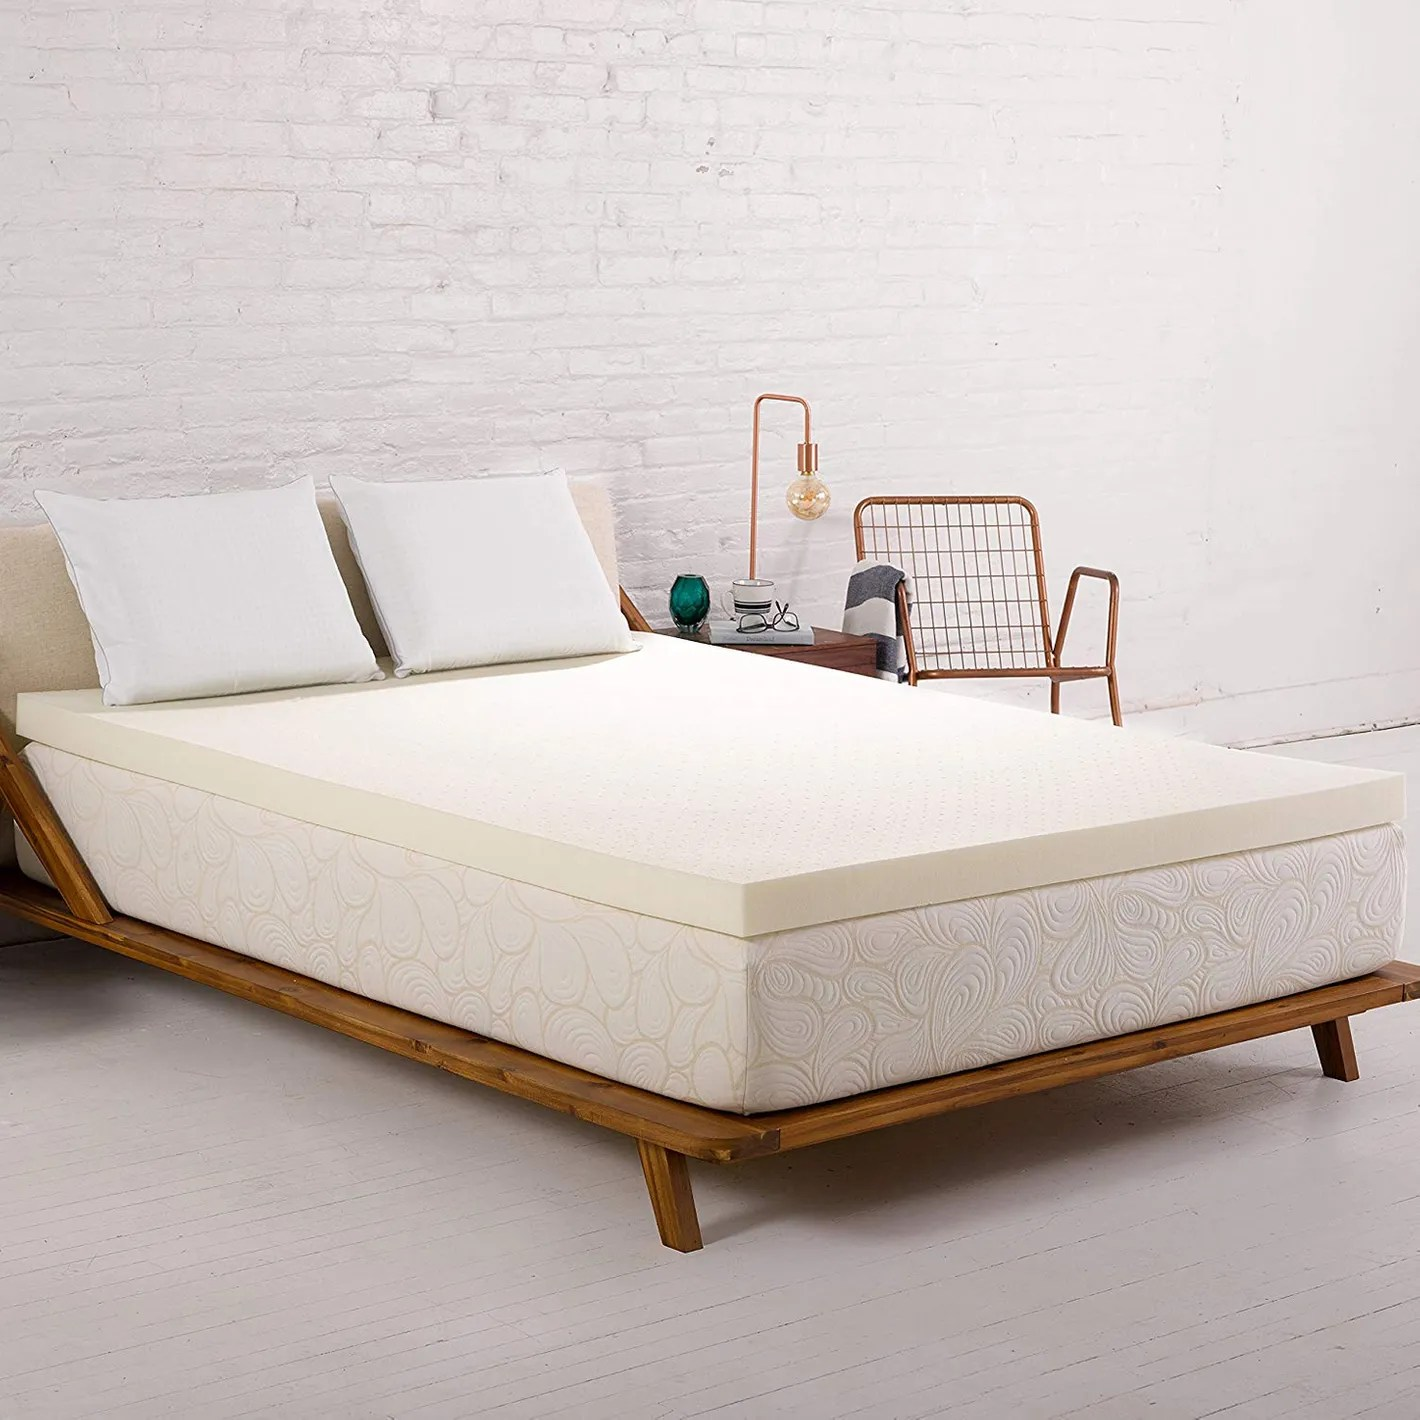 Best Mattress Toppers Australia The 12 Best Mattress Toppers 2019